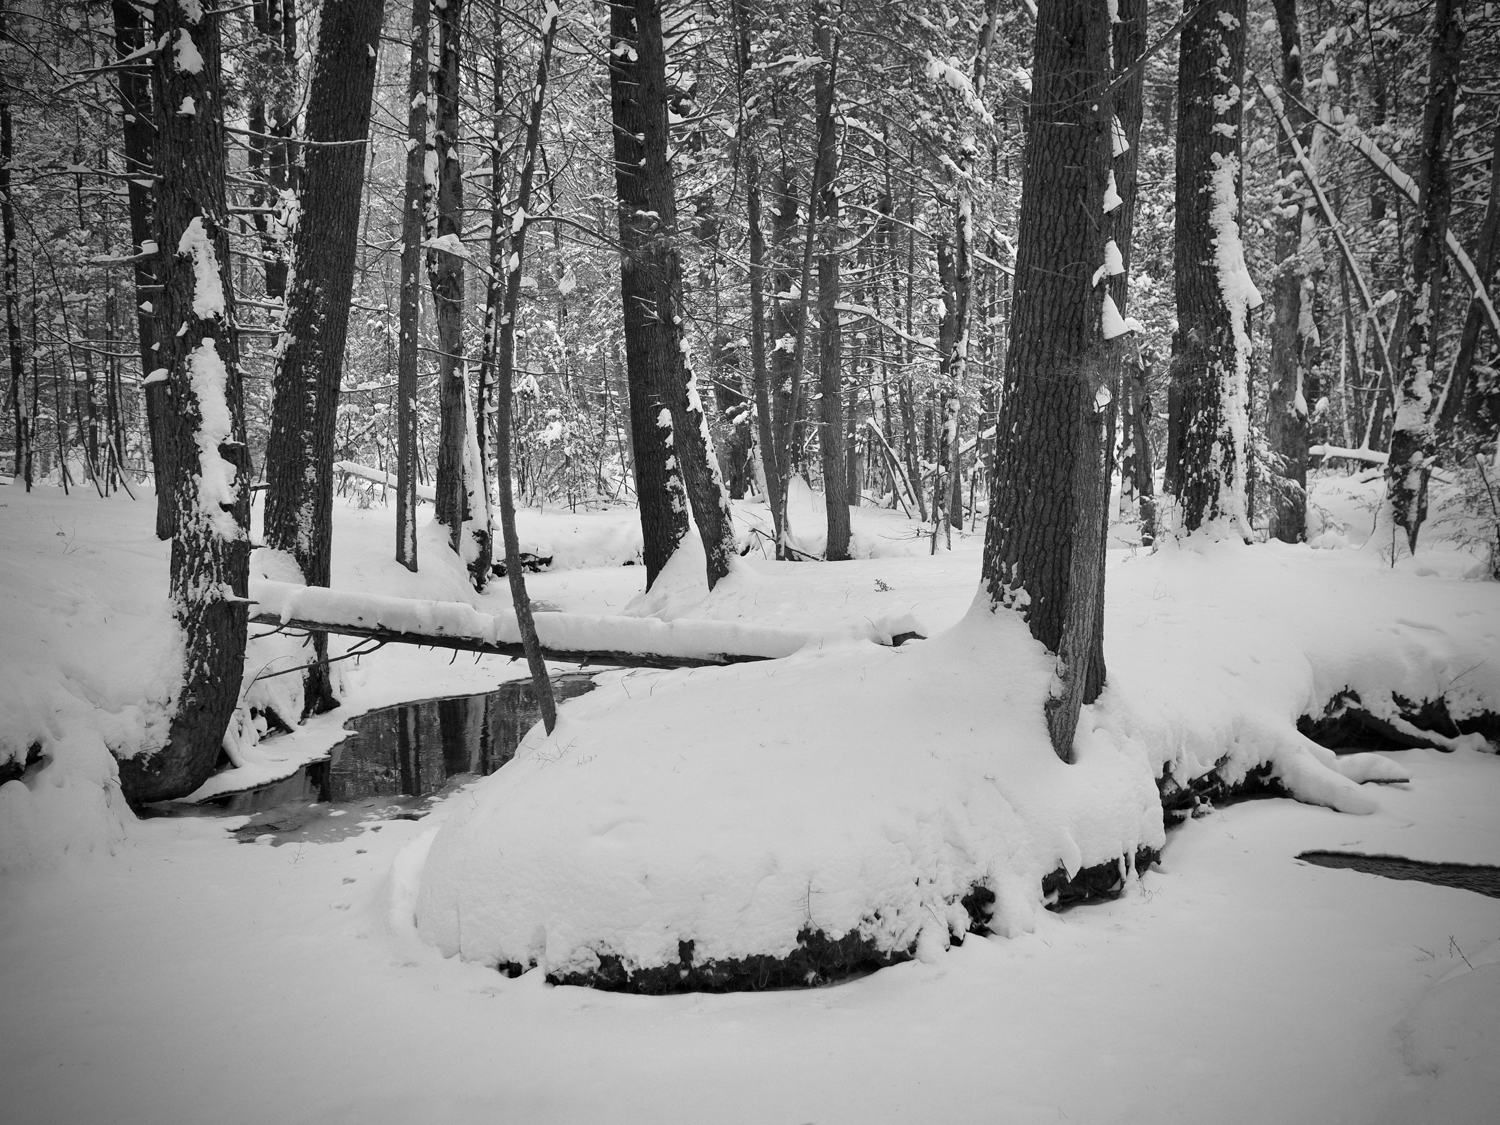 A winding stream in a snow-covered wood — copyright Trace Meek